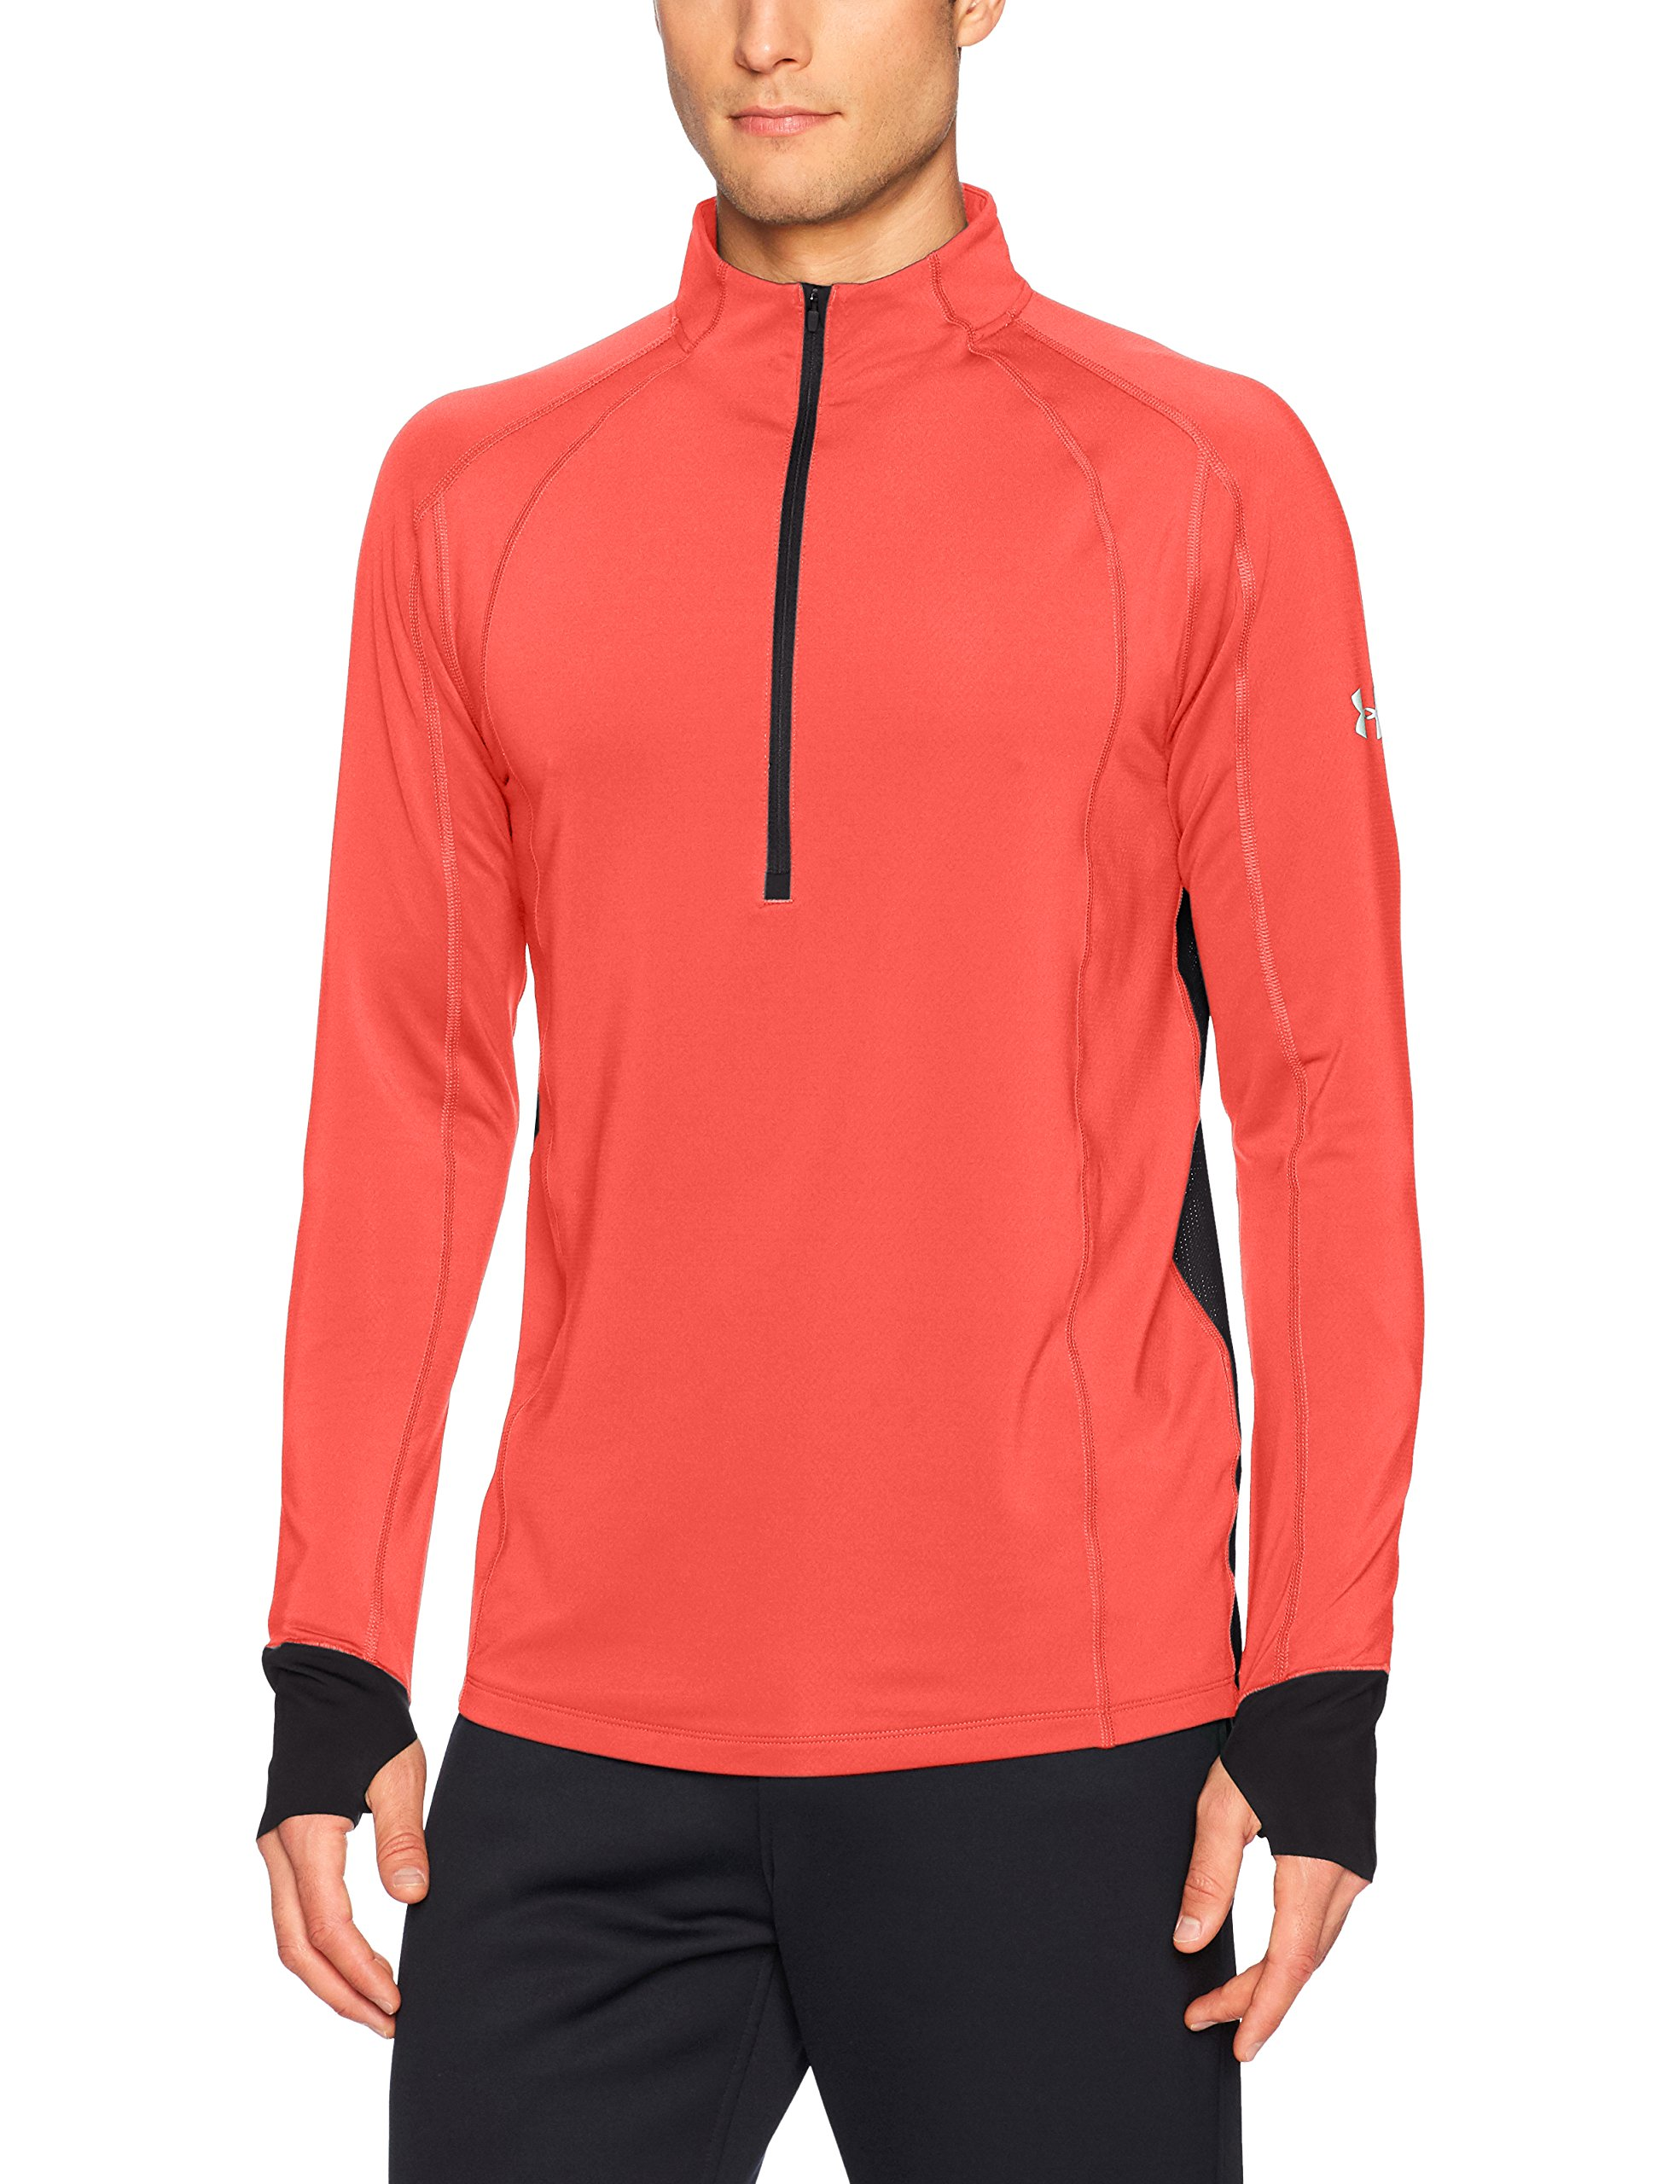 Under Armour Men's ColdGear Reactor Run ½ Zip,Marathon Red (963)/Reflective, Small